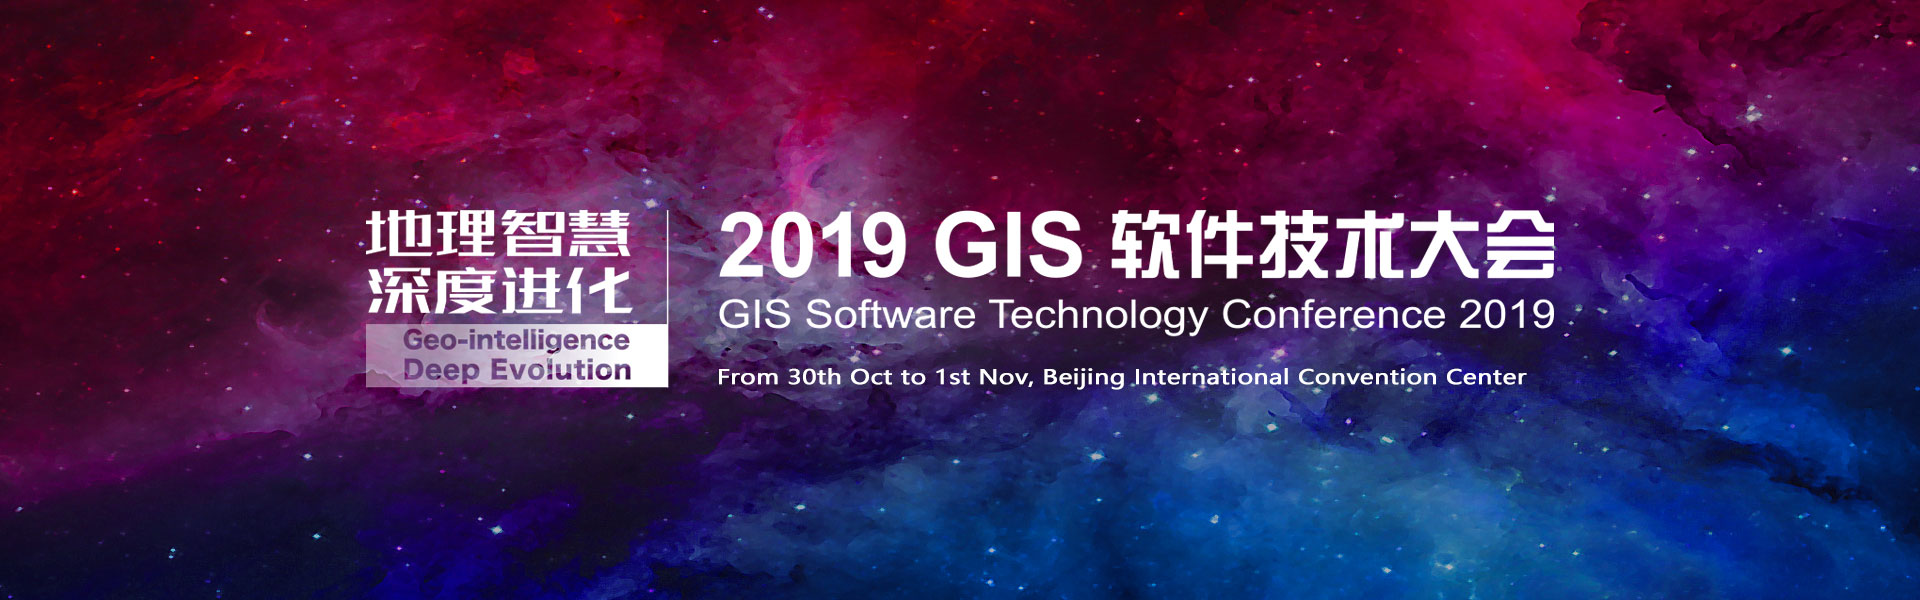 Welcome to 2019 GIS Software Technology Conference - SuperMap